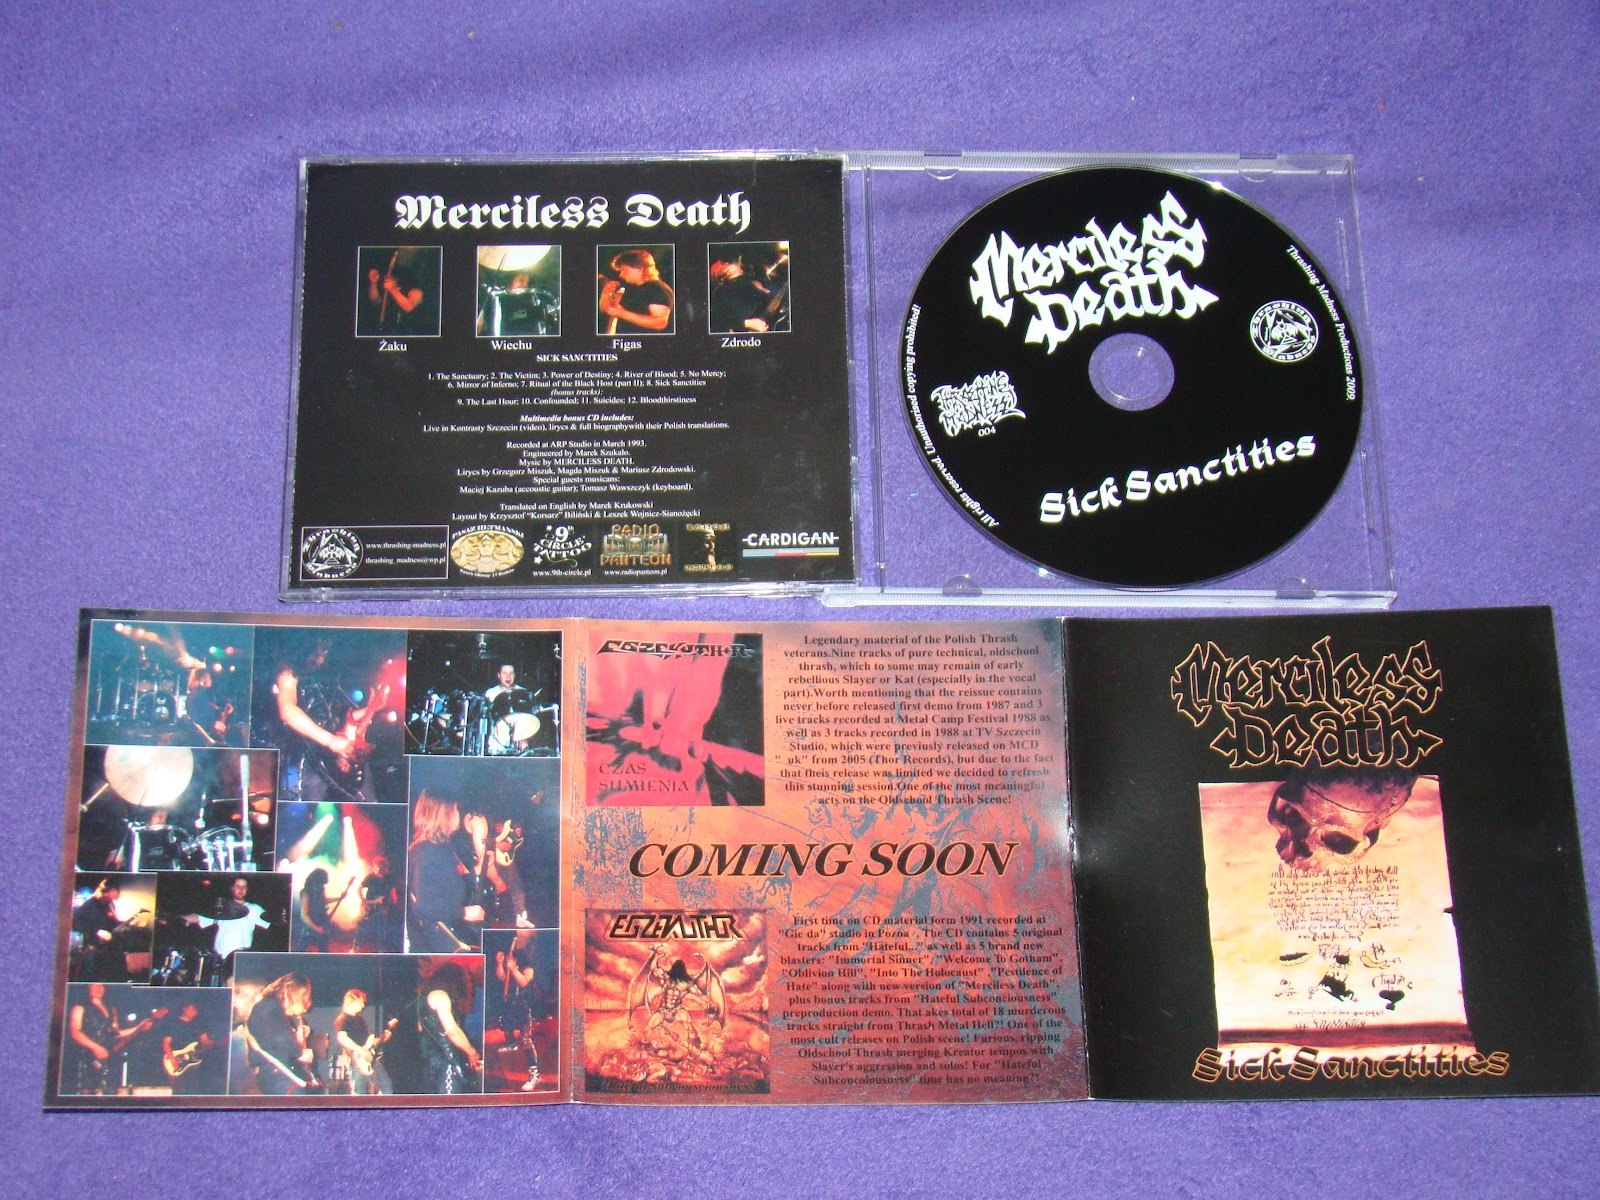 MERCILESS DEATH - Sick Sanctities CD